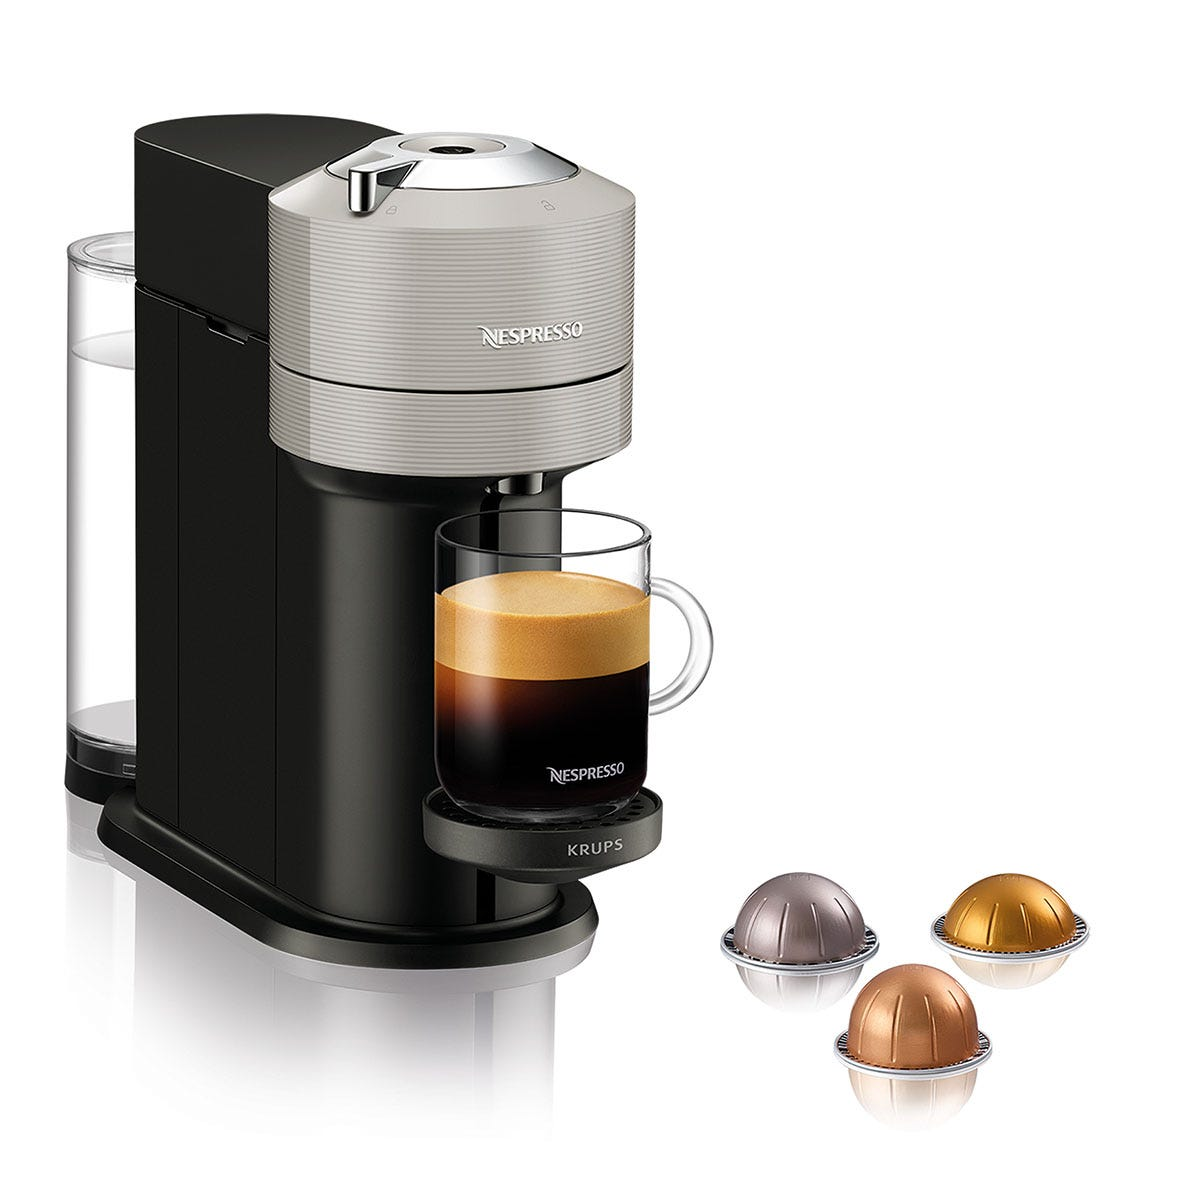 Nespresso Vertuo Krups XN910B40 Coffee Machine, Light Grey - Claim 50 coffee capsules for free when you buy this product